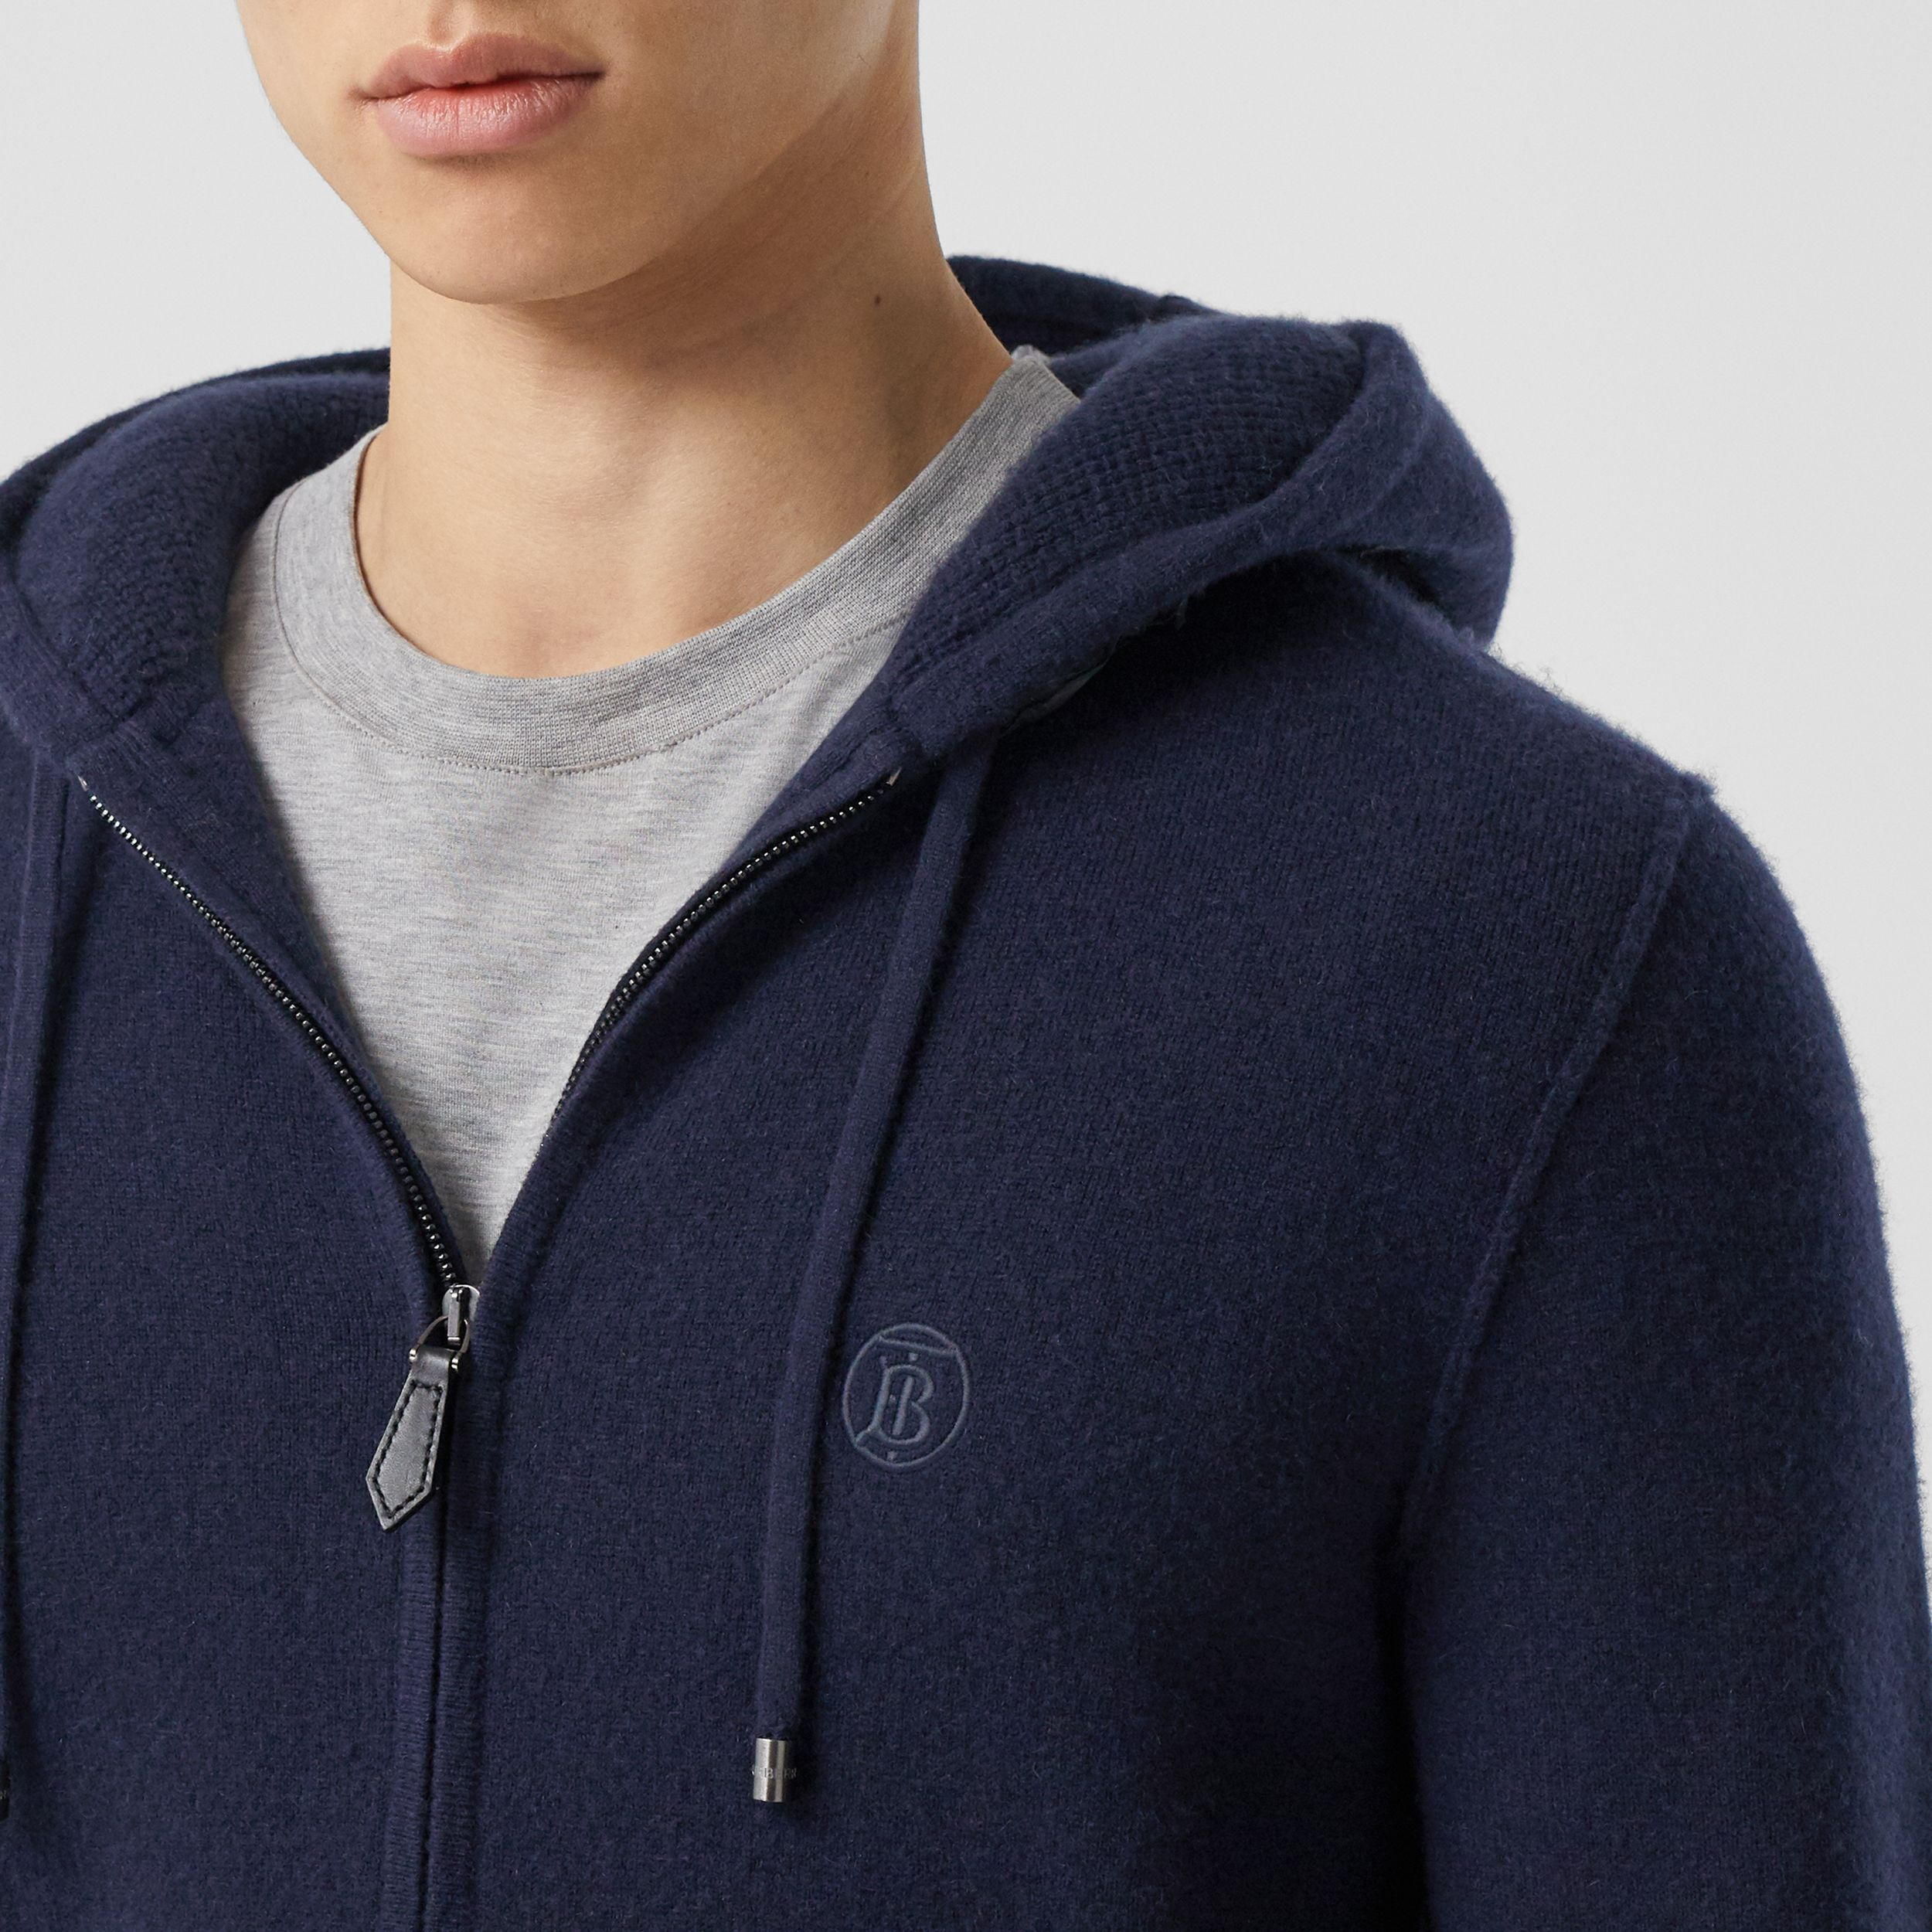 Monogram Motif Cashmere Blend Hooded Top in Navy - Men | Burberry - 2